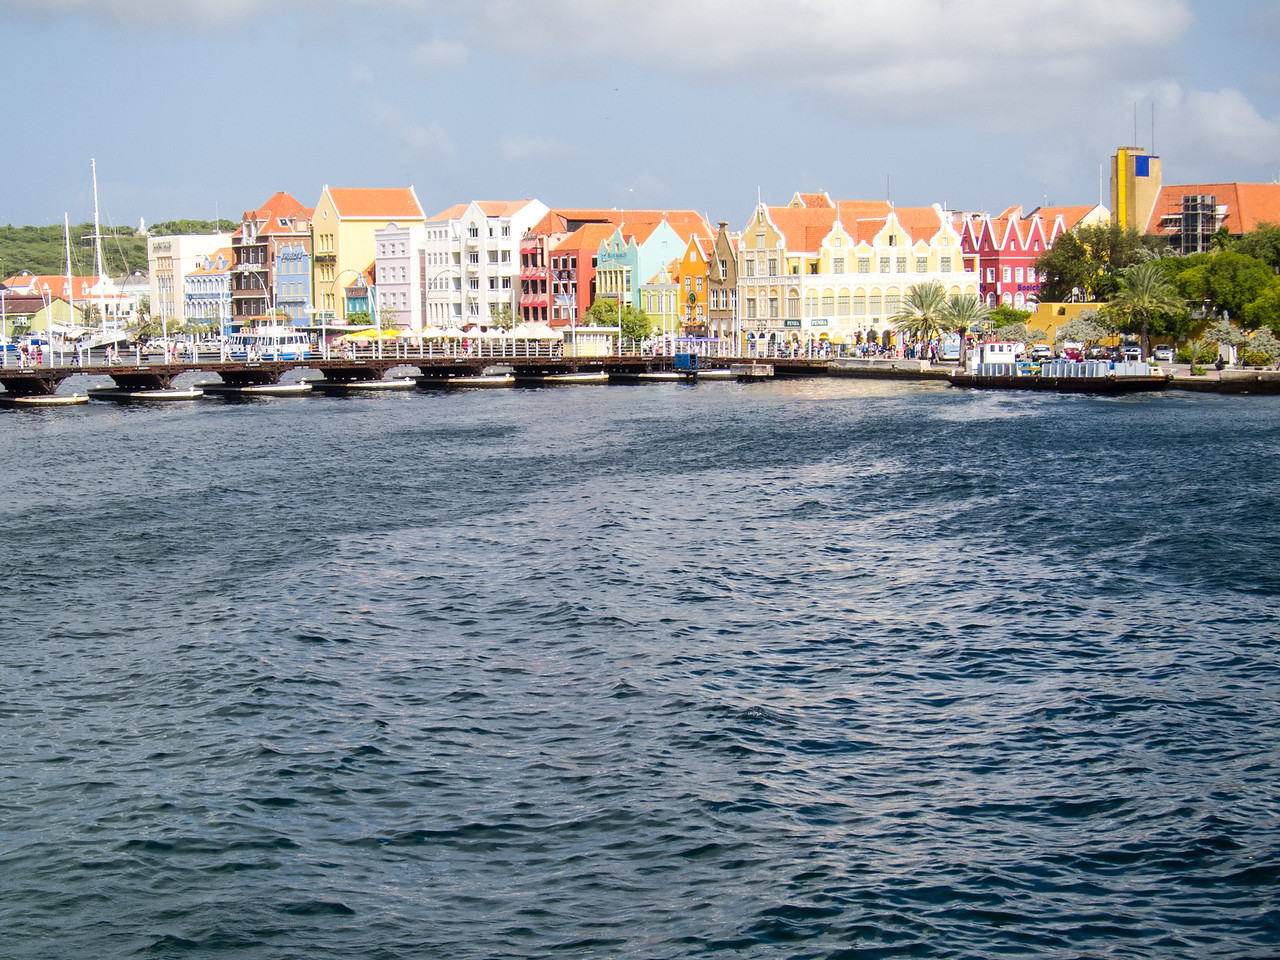 View of Willemstad, Curaçao with Pontoon Bridge - February 2013